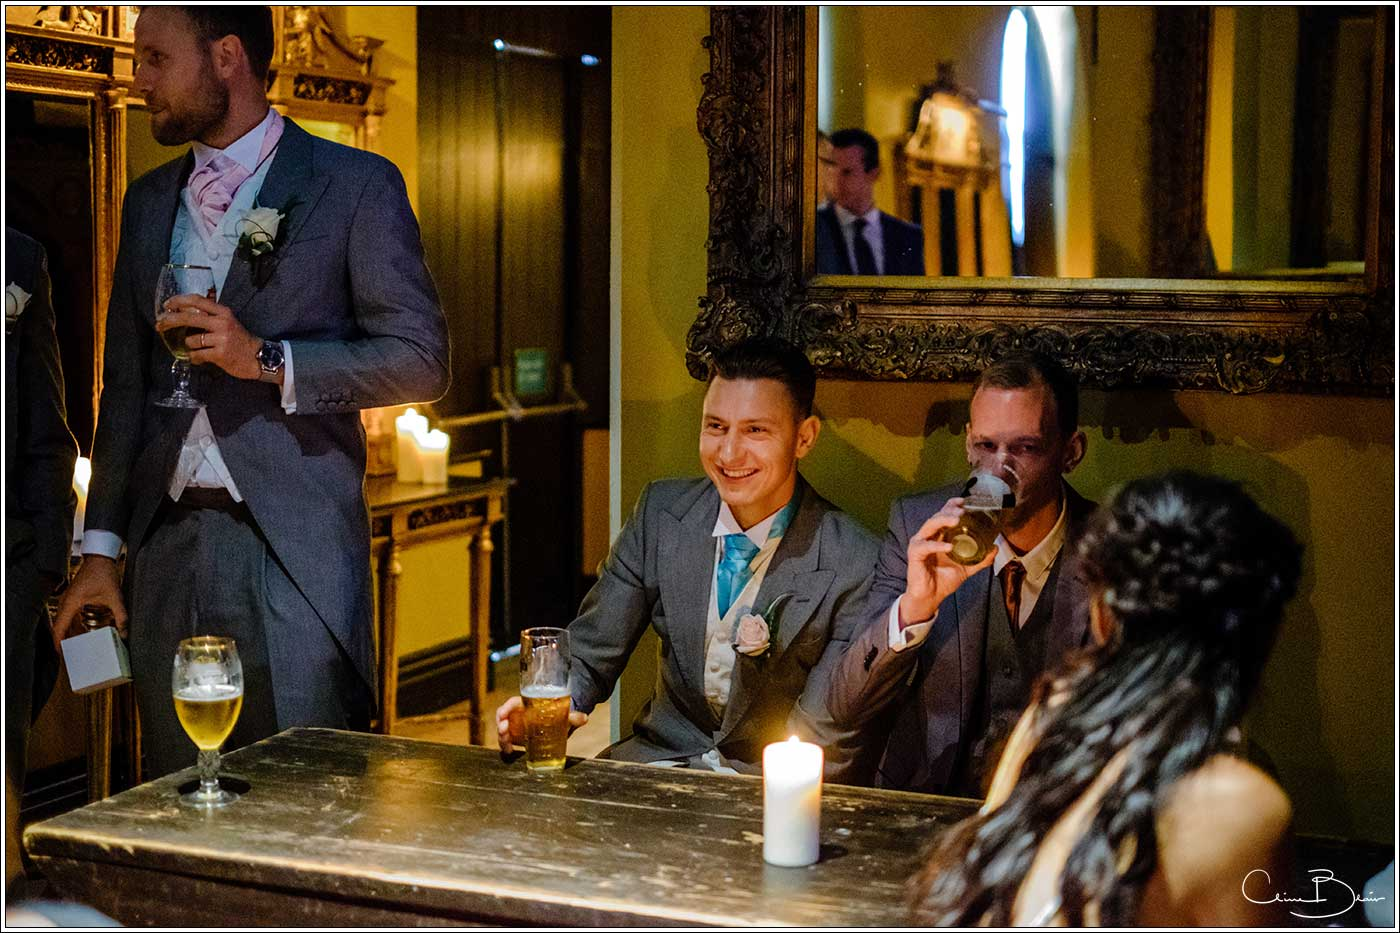 Coombe Abbey wedding photography showing groom having a drink before the ceremony